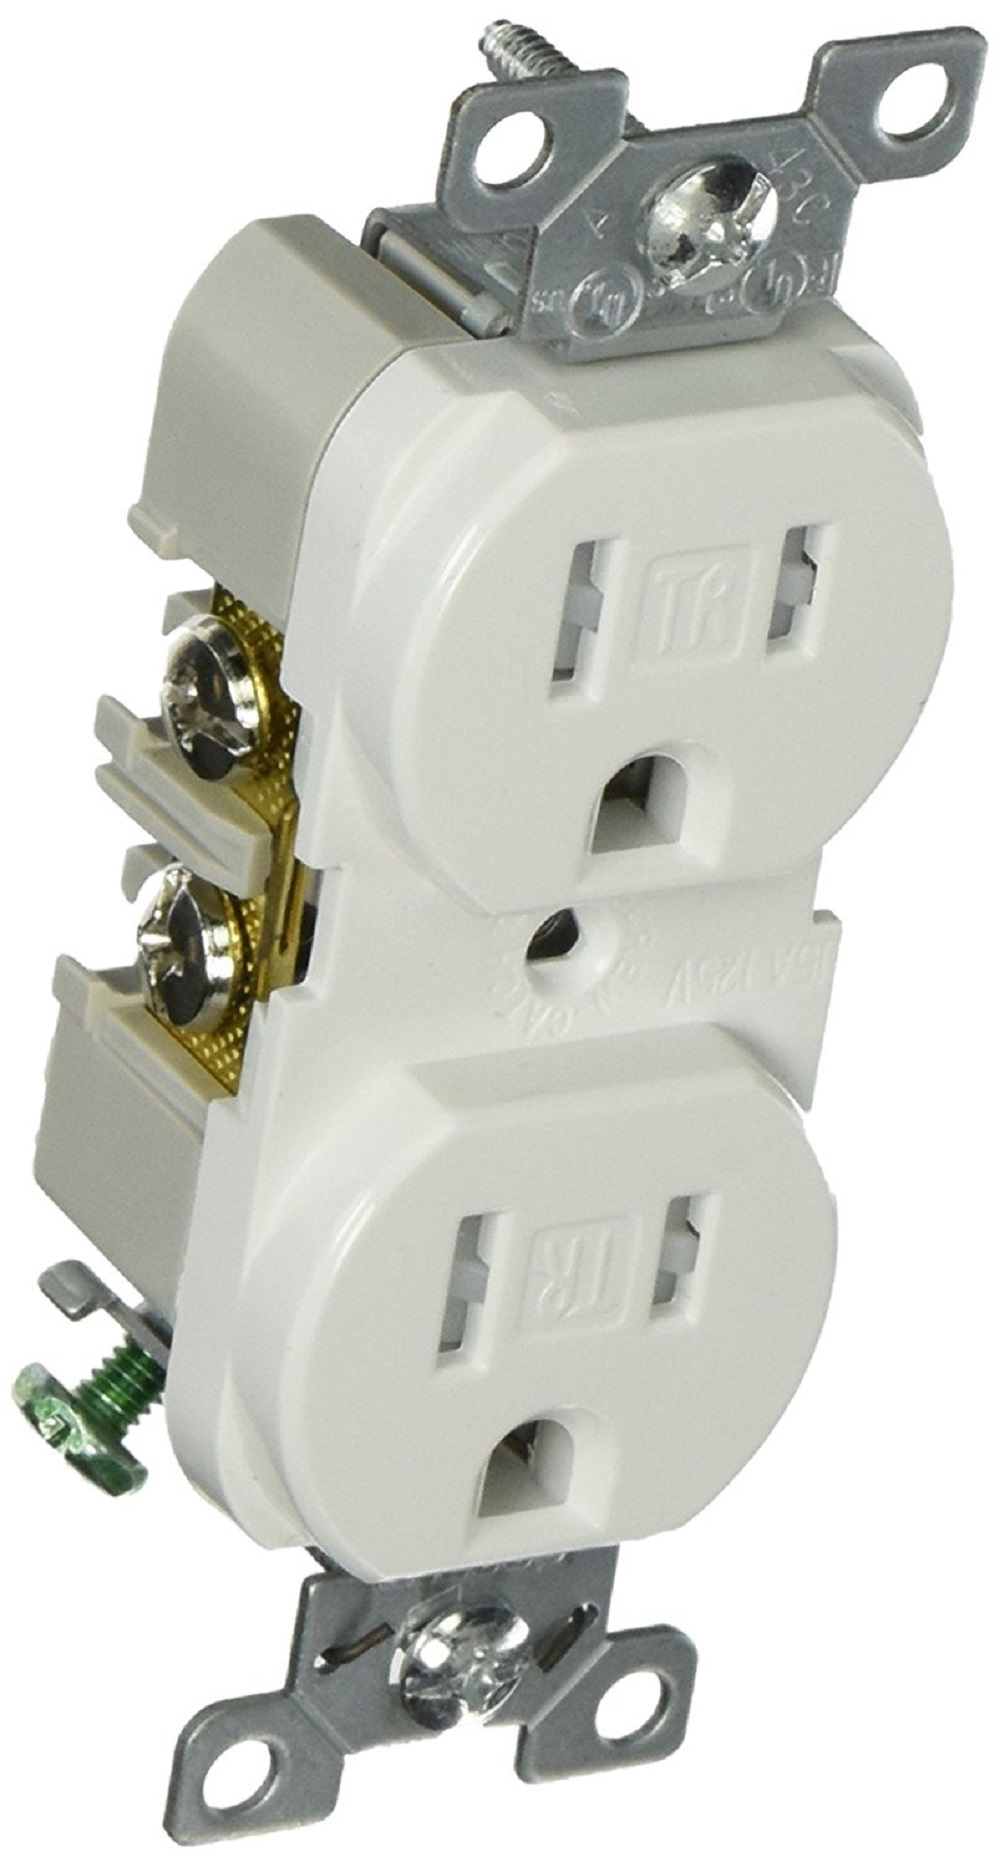 hight resolution of cooper wiring trbr15w bxsp duplex receptacle white lot of 3